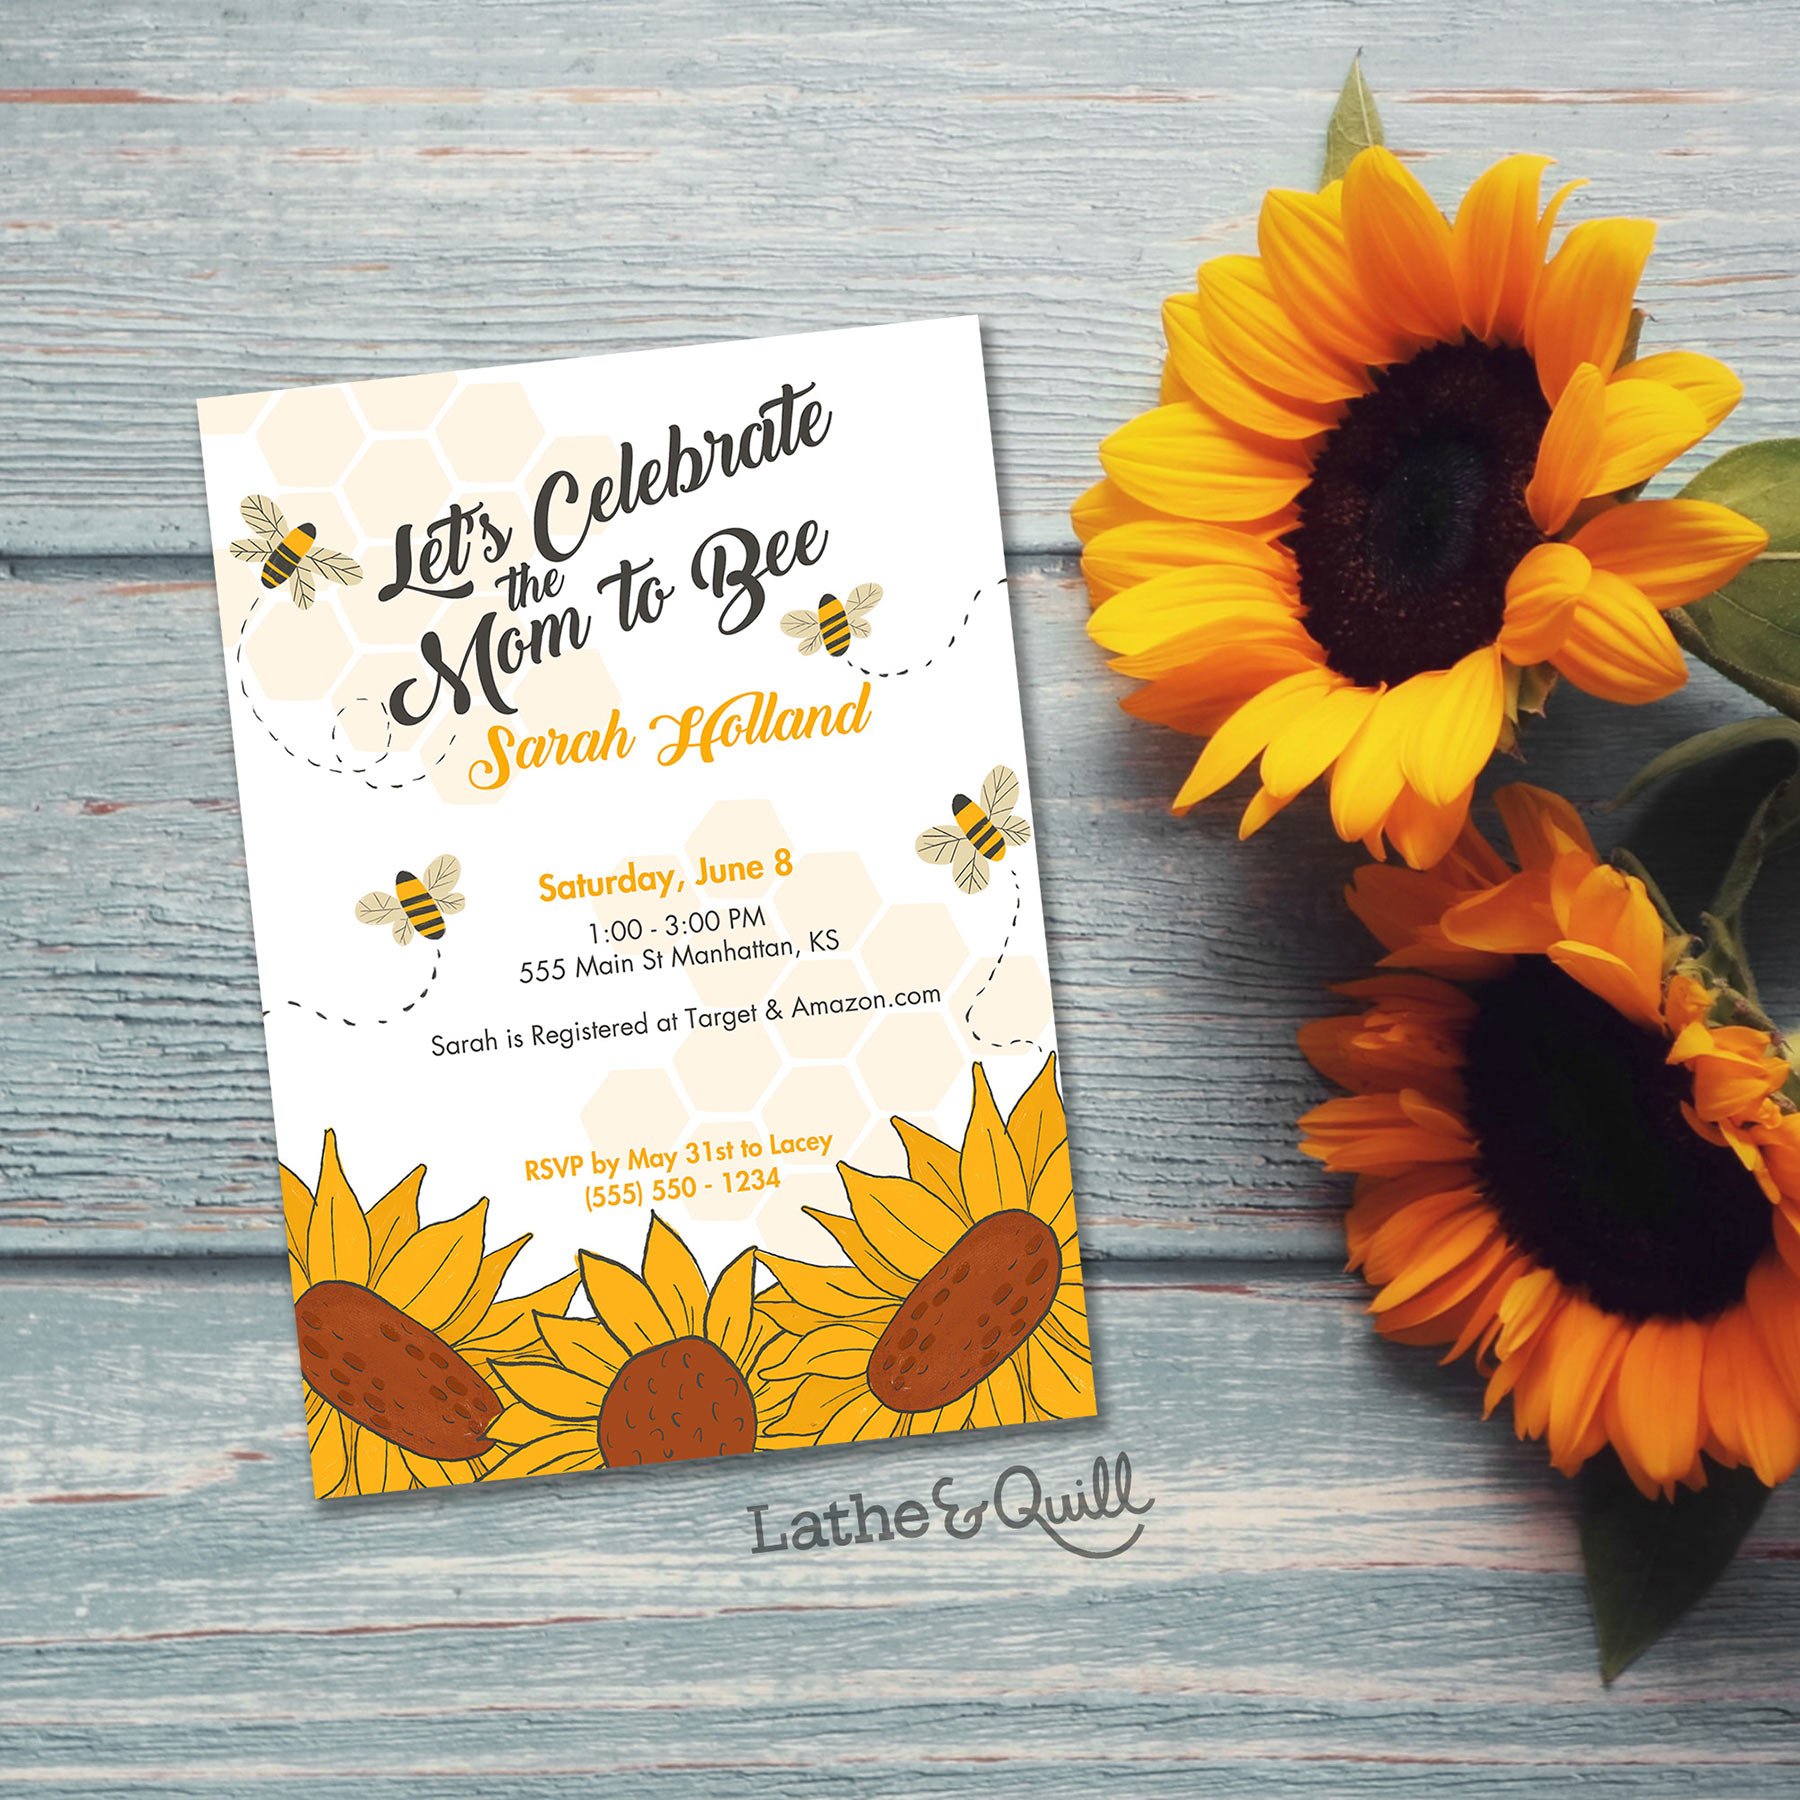 Celebrate the Mom to Bee with this sweet honey bee themed baby shower invitation. Inspired by my Kansas roots.